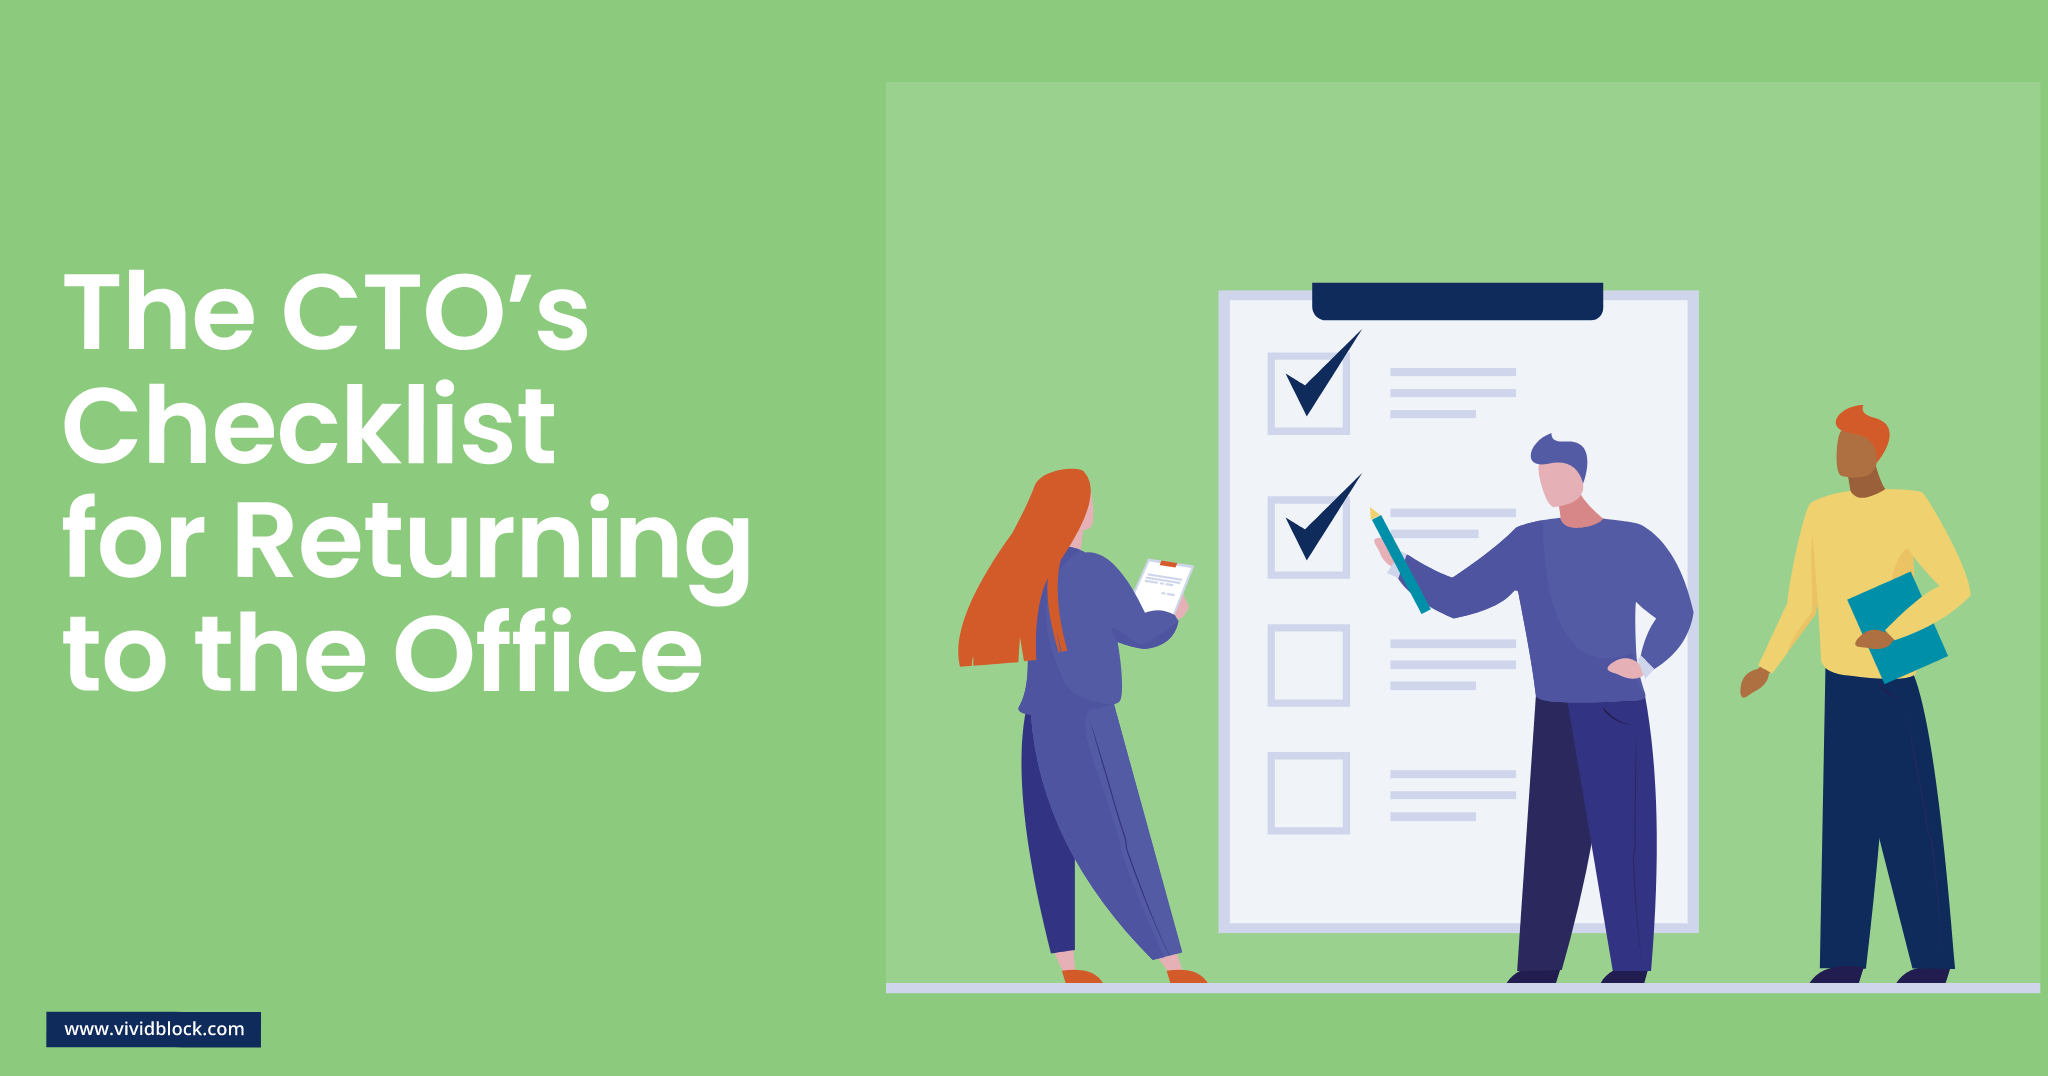 vividblock it and cloud services software marketing and website design wale the cto checklist for returning to the office